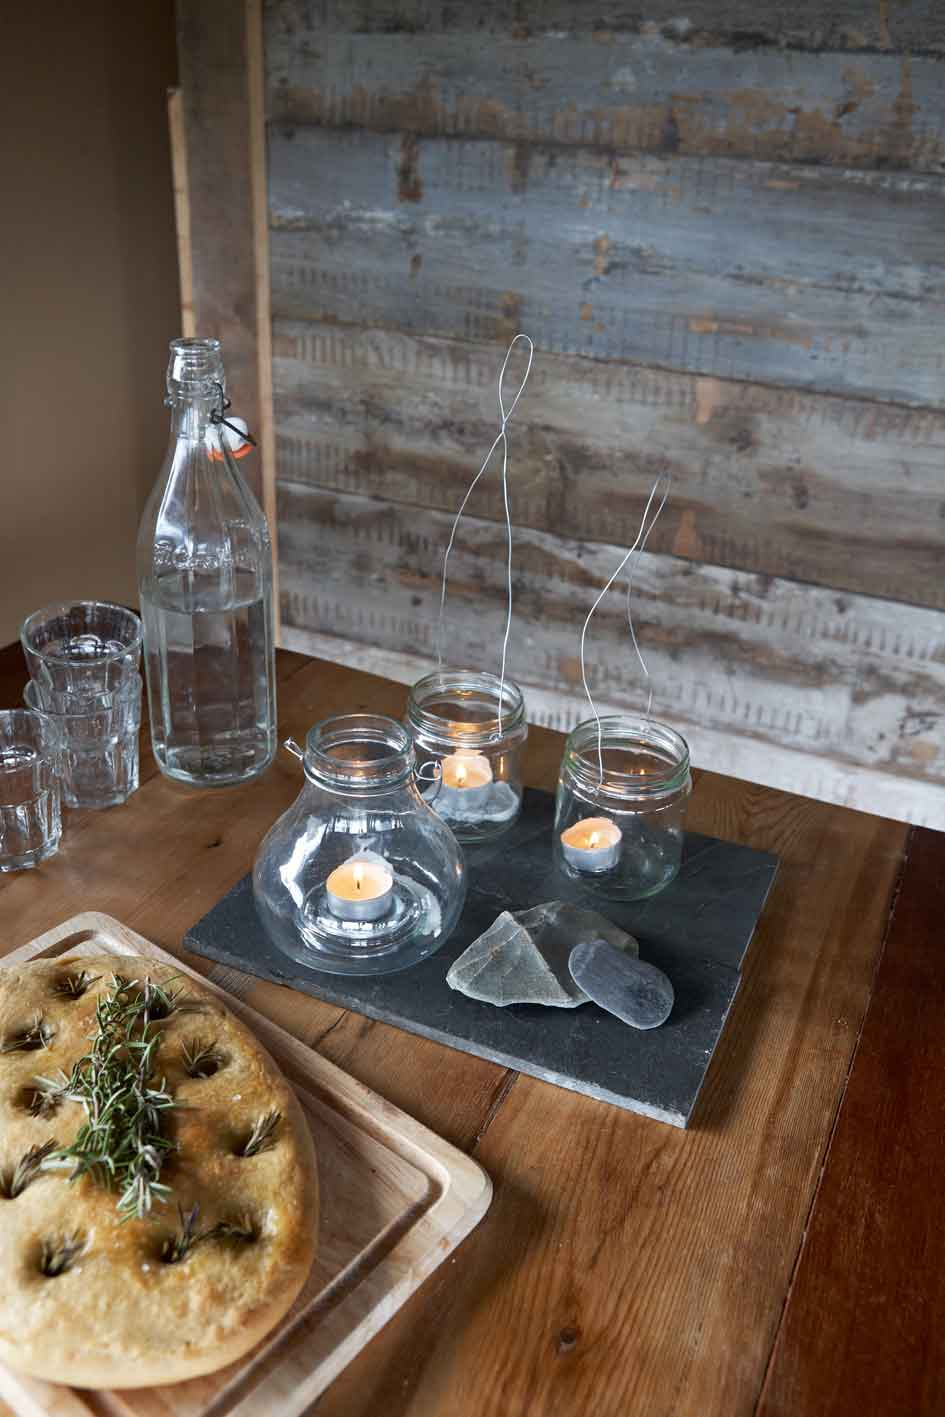 focaccia bread on the table next to water bottle and tea light lanterns